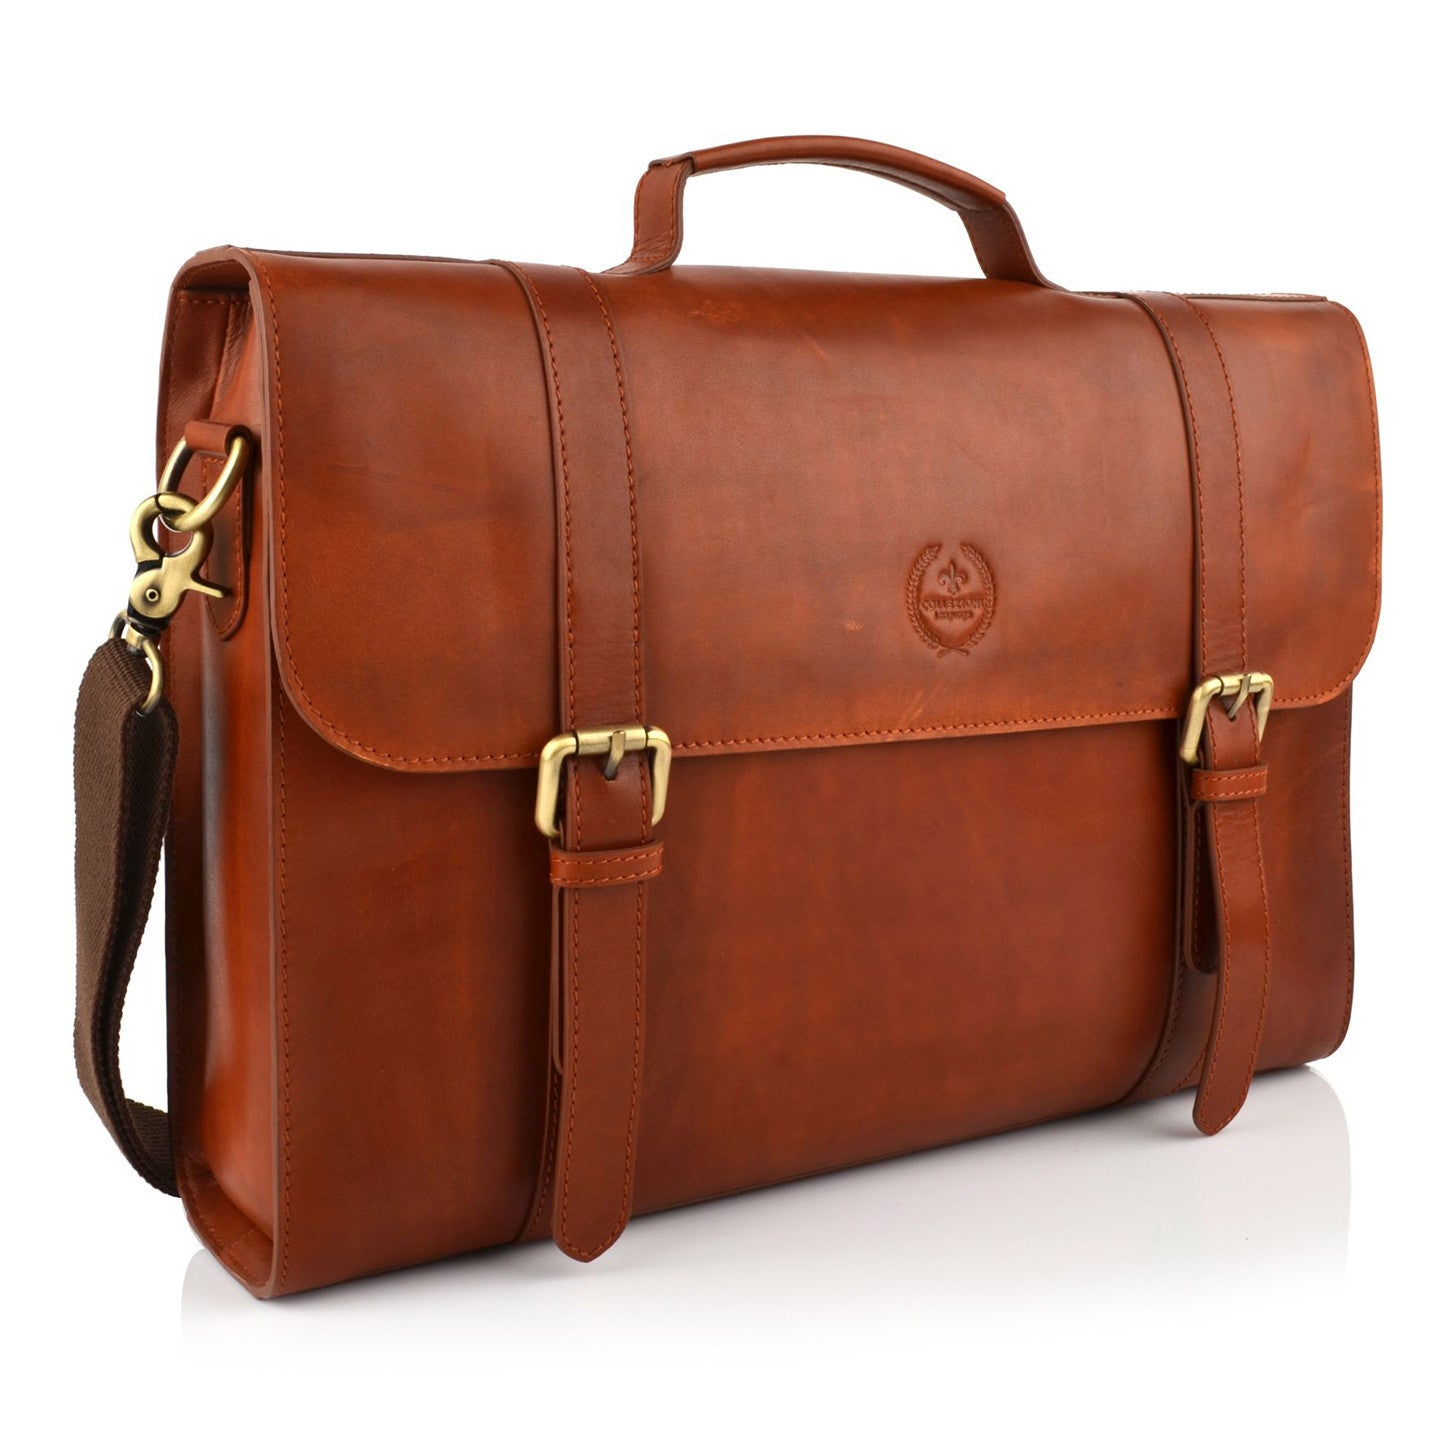 LG16043 - Collezione Denver Men's Tan Briefcase Bag